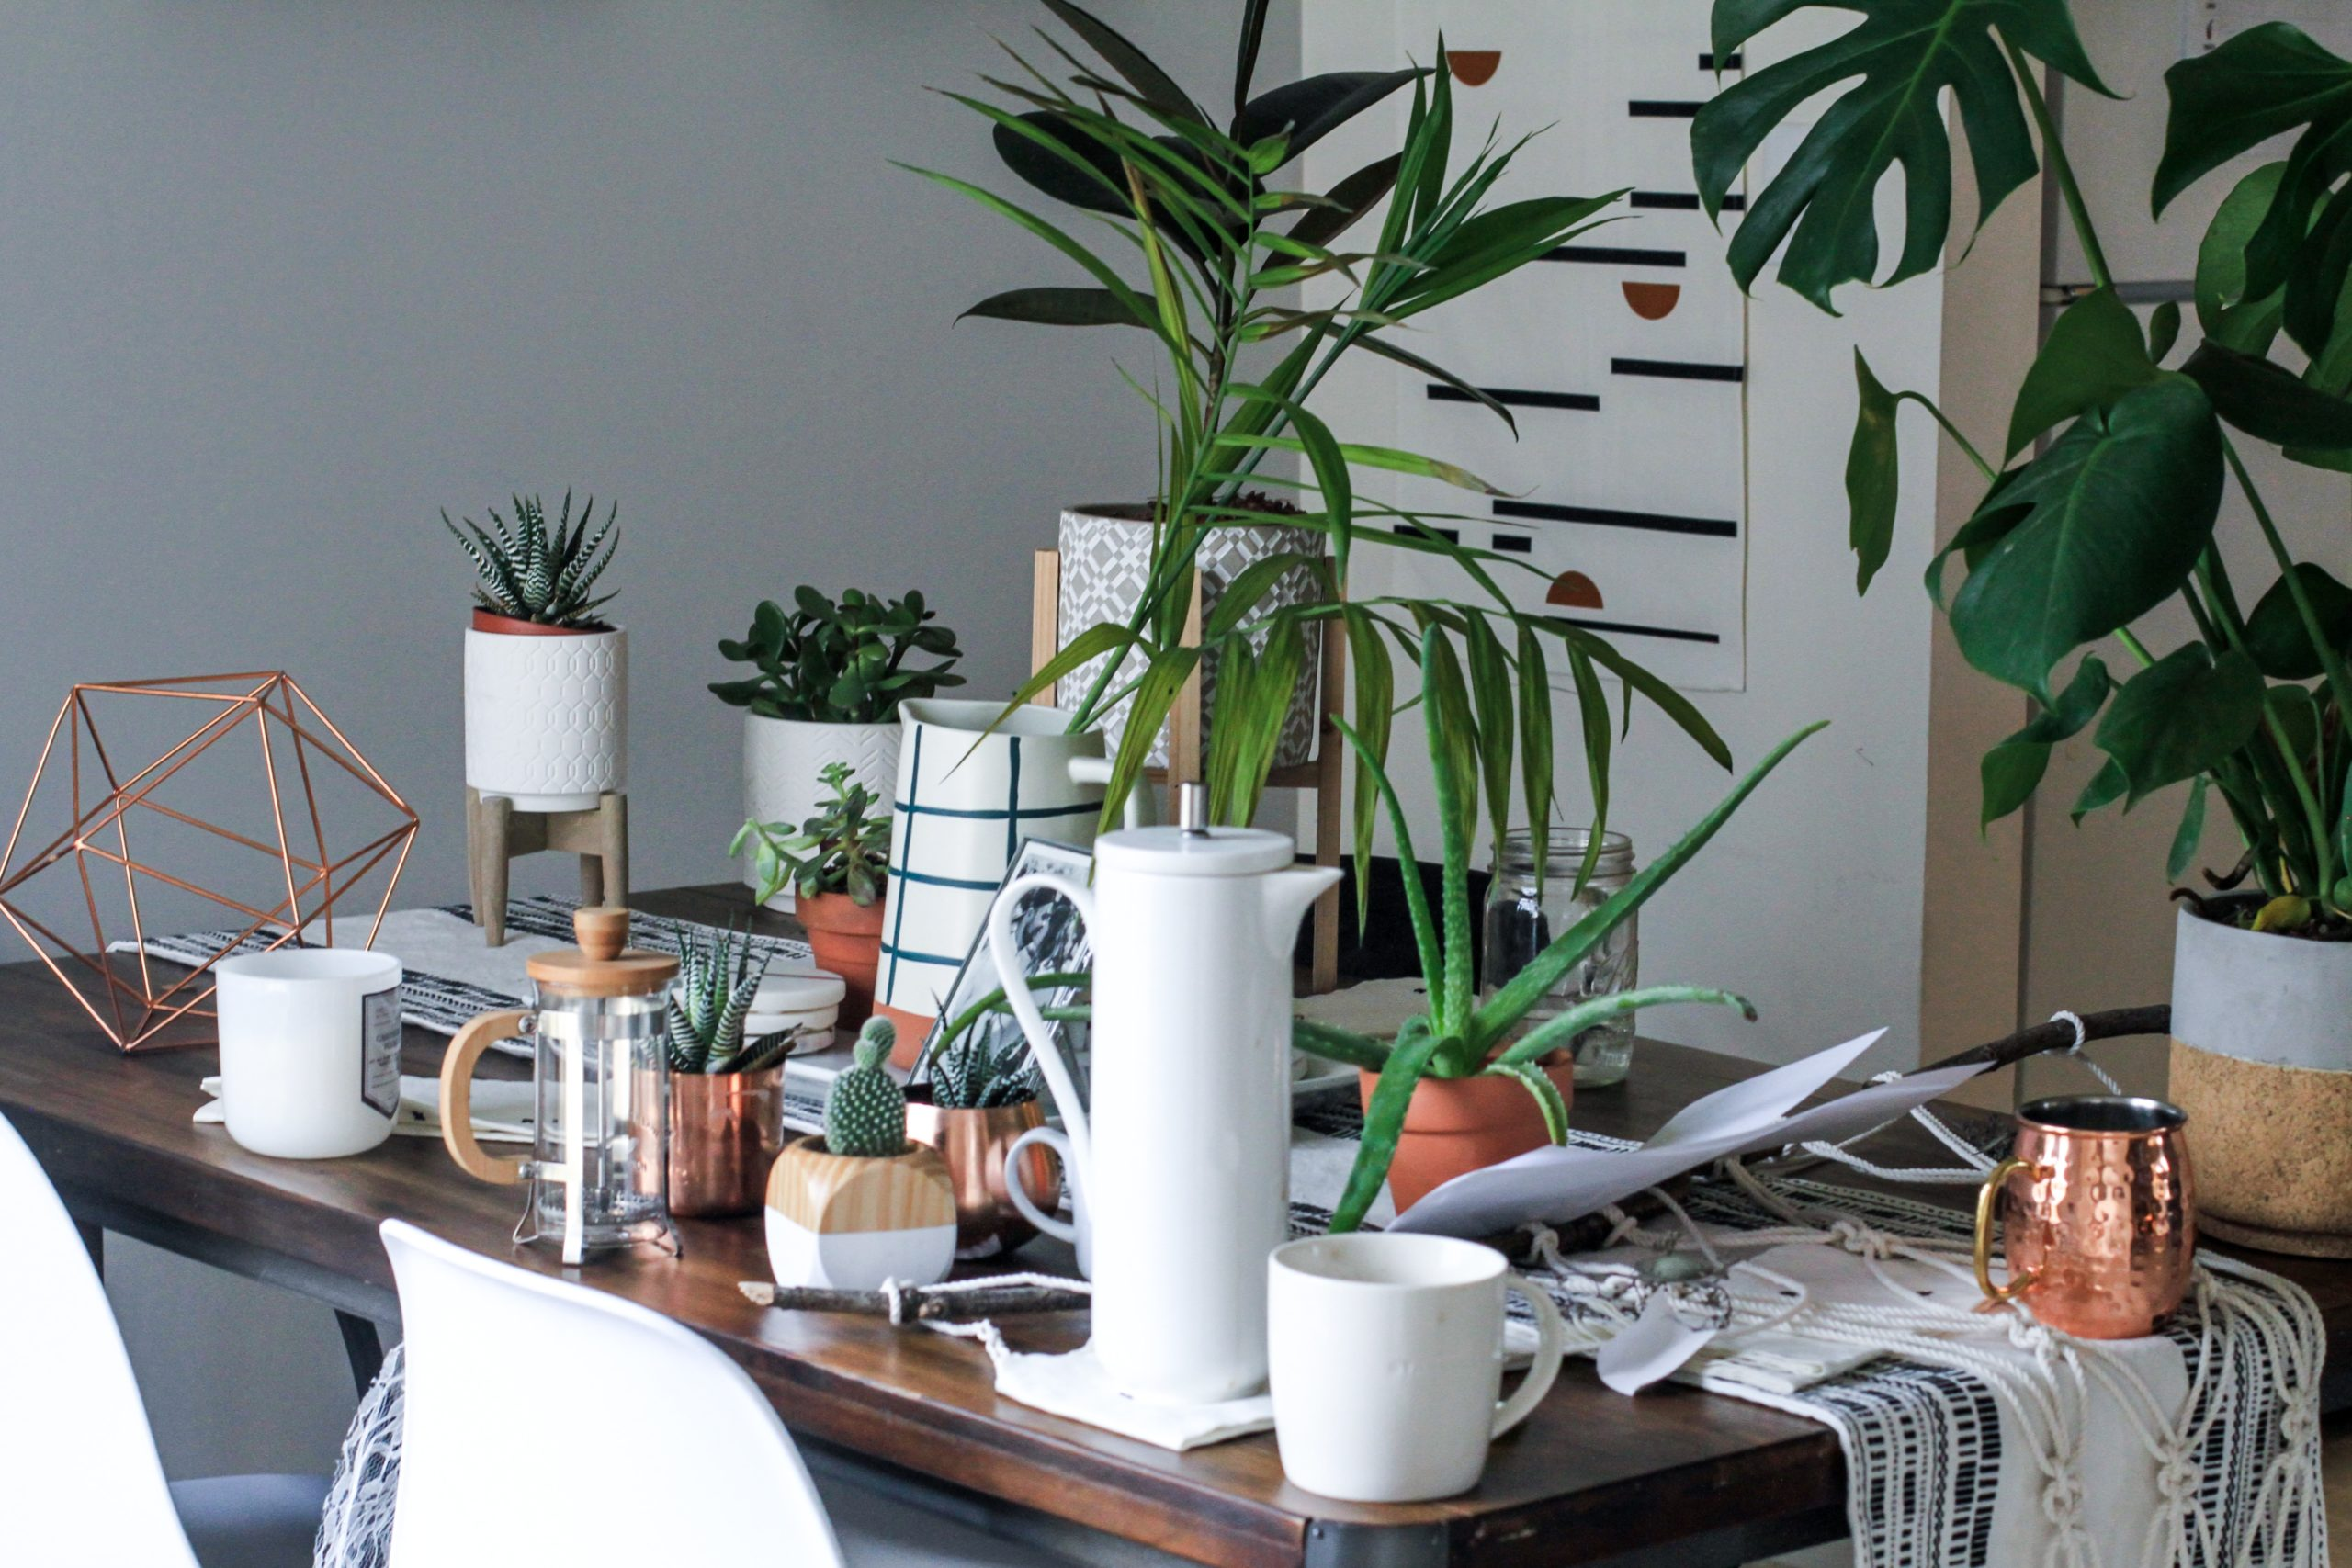 Plant Stands Ideas To Decorate Your Indoor & Outdoor Space